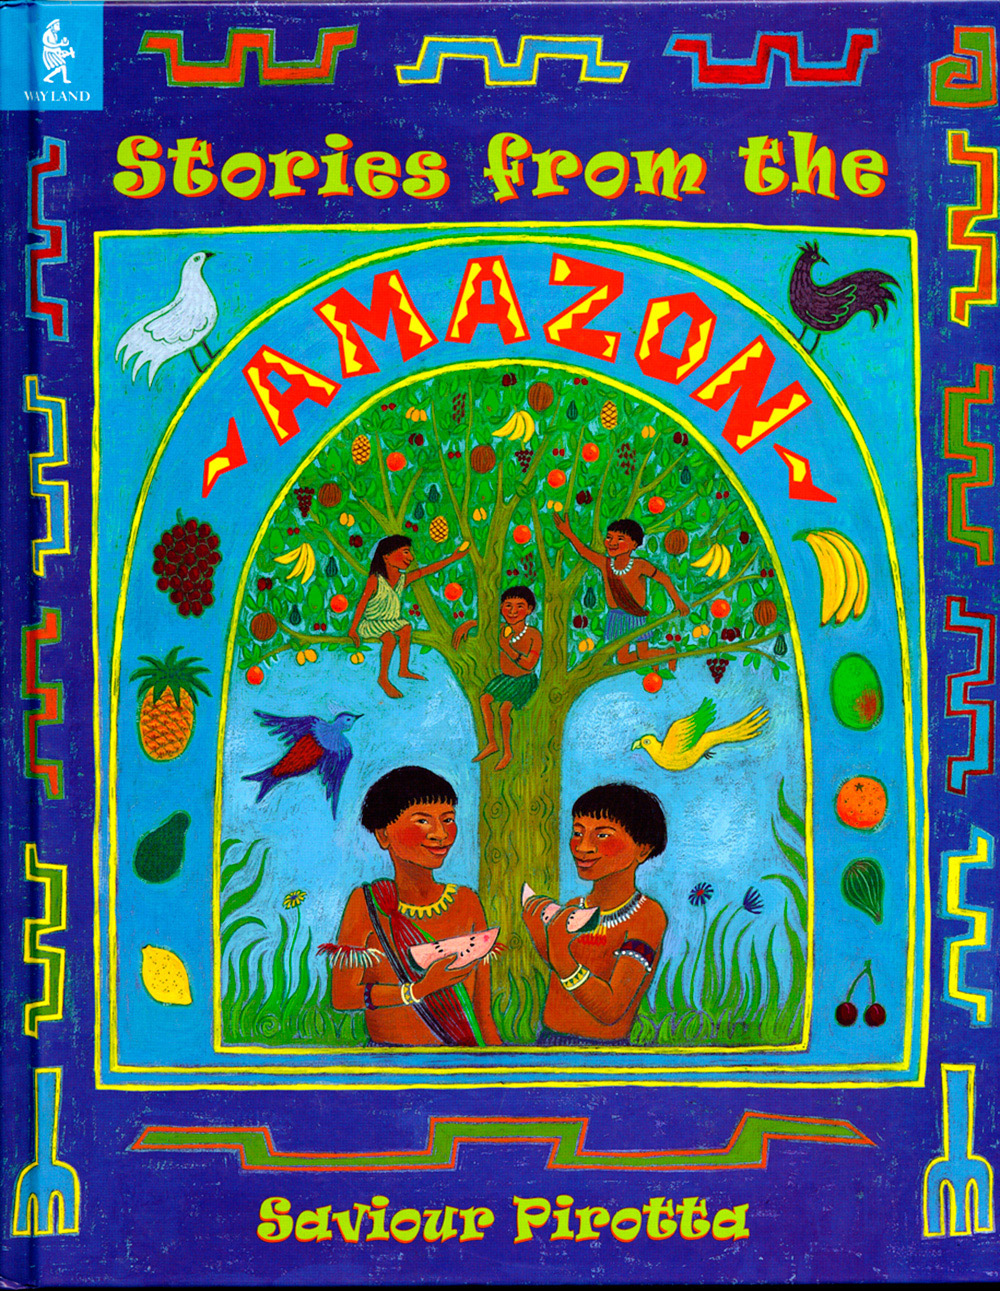 Stories from the Amazon book cover design